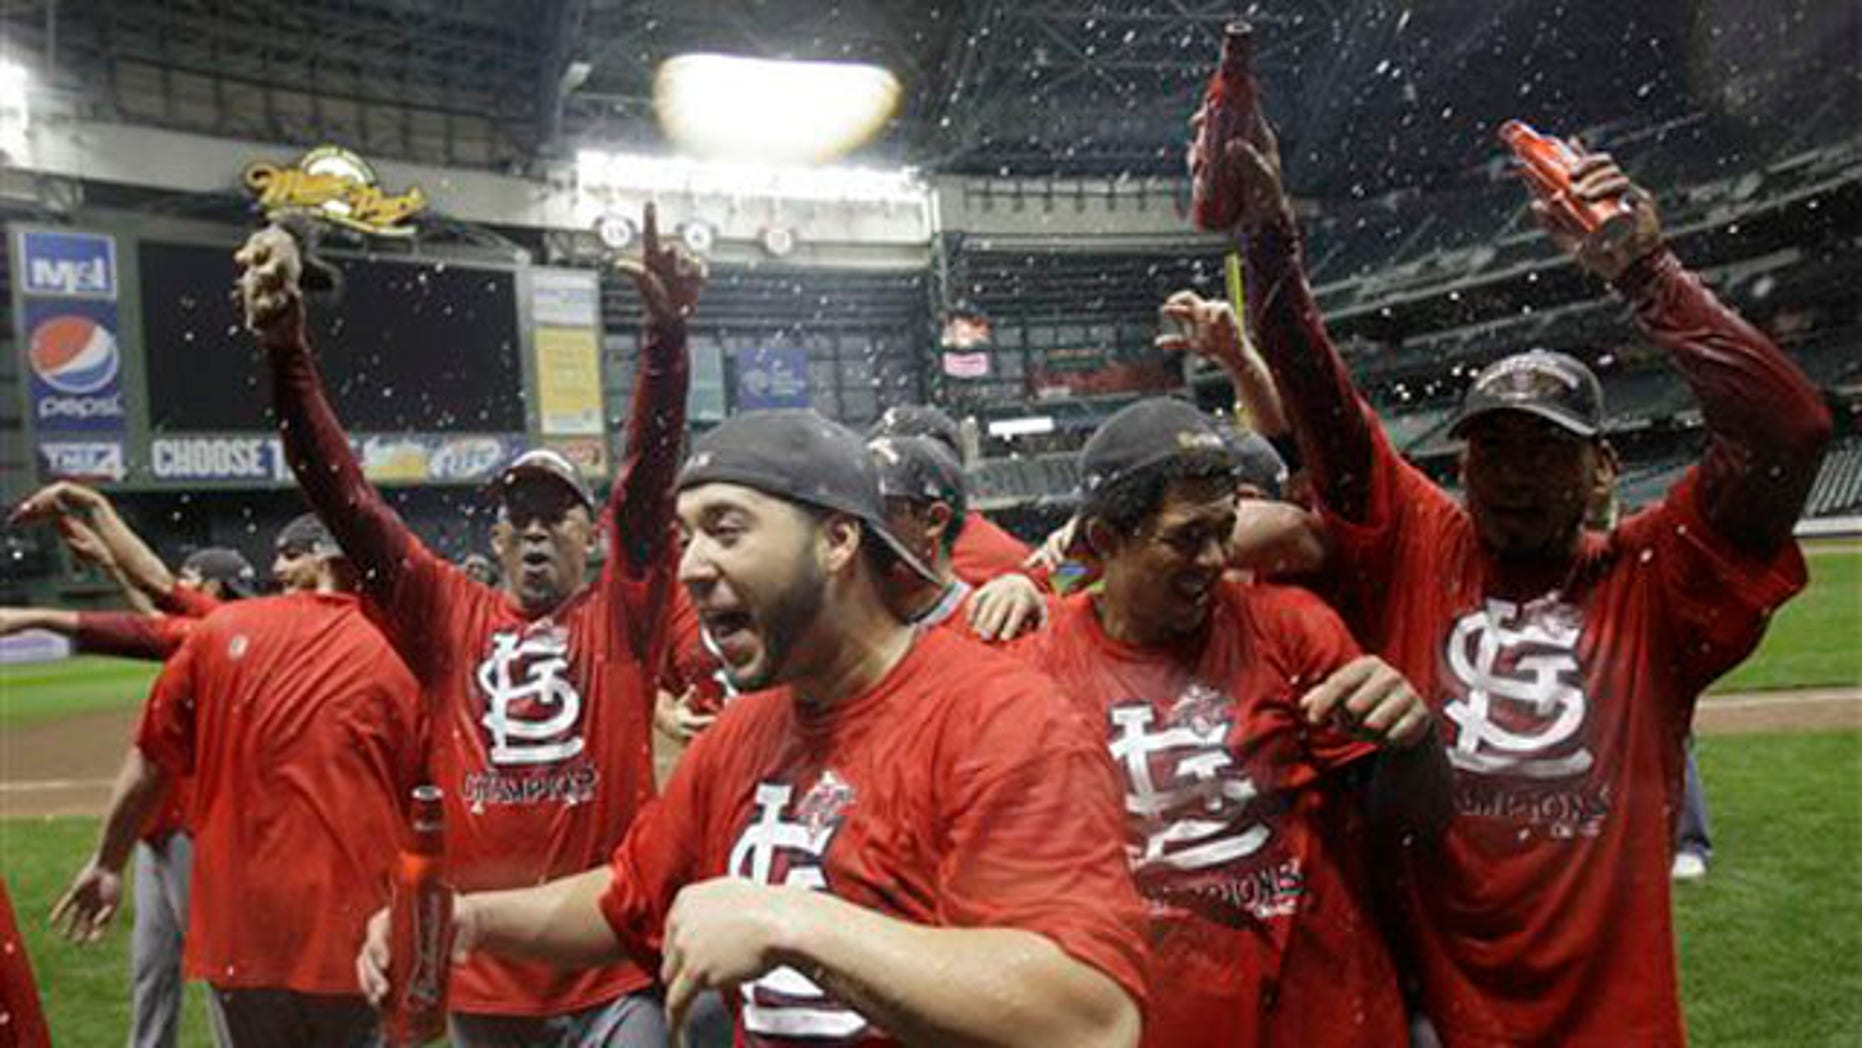 The St. Louis Cardinals celebrate after Game 6 of baseball's National League championship series against the Milwaukee Brewers Sunday, Oct. 16, 2011, in Milwaukee. The Cardinals won 12-6 to win the series and advance to the World Series. (AP Photo/David J. Phillip)